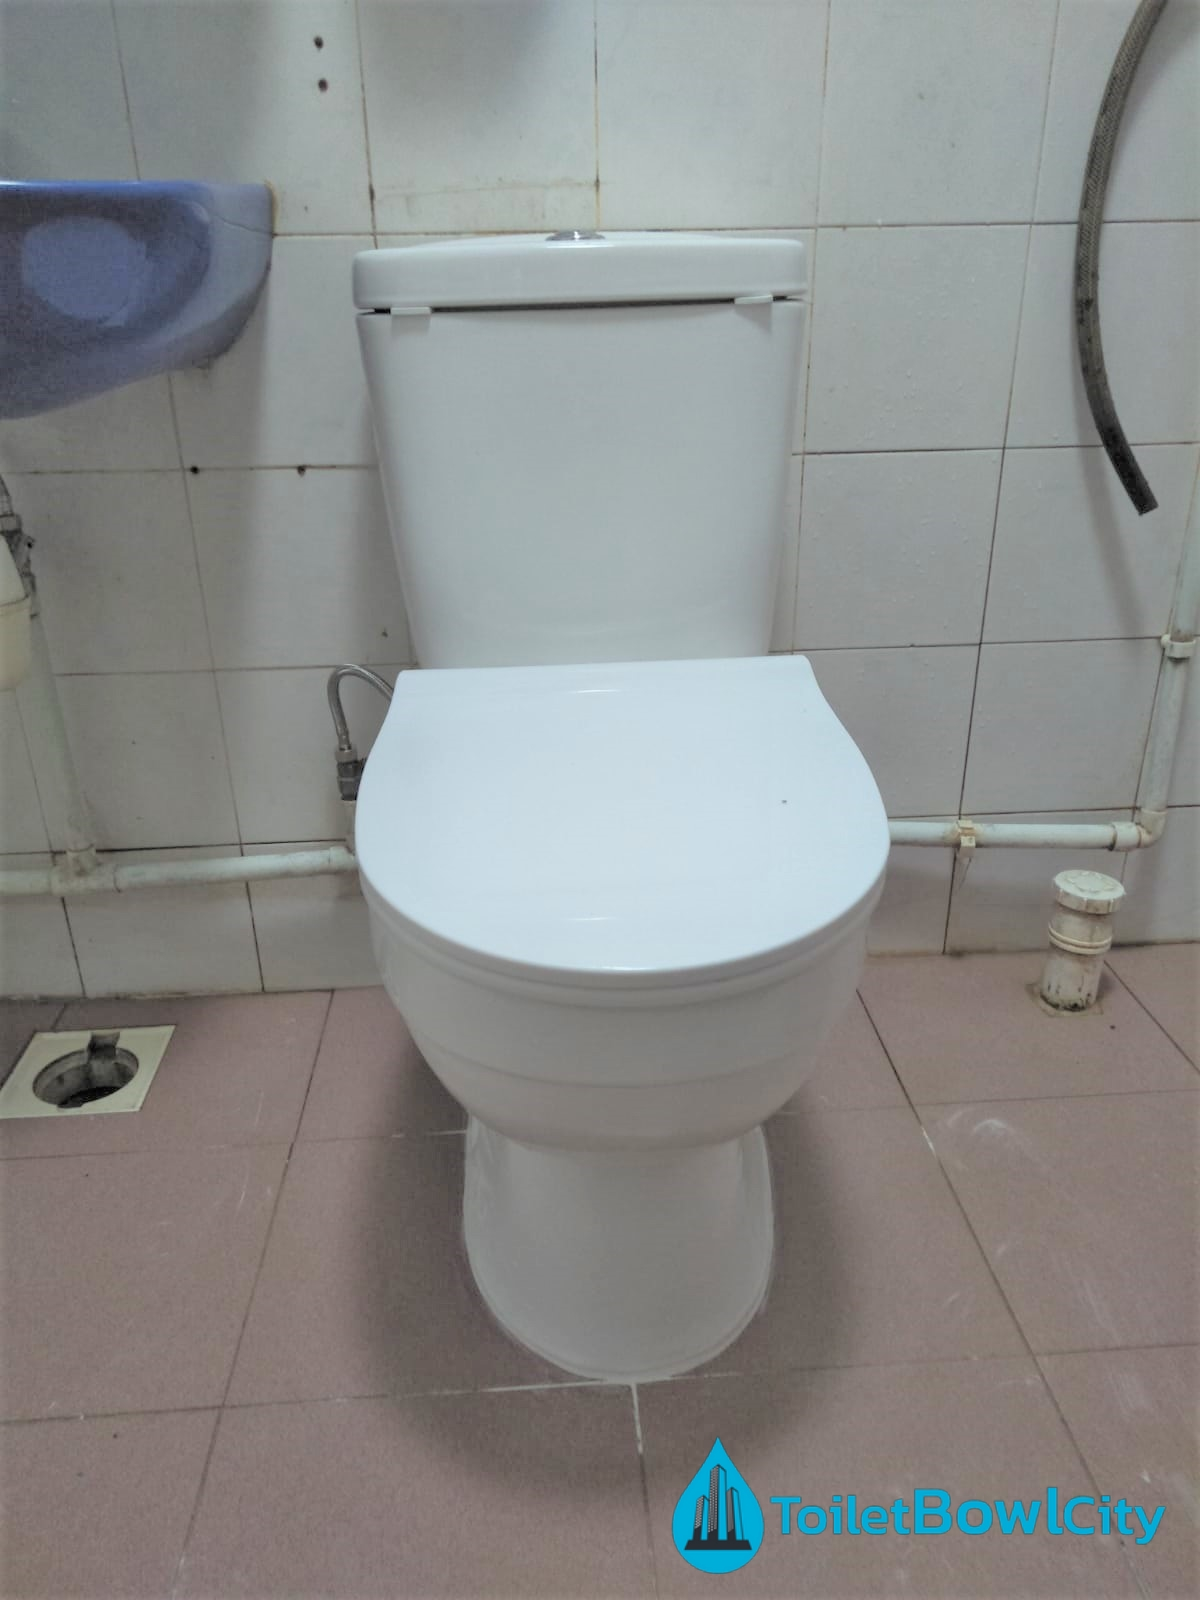 Picture of: Toilet Bowl Replacement In Singapore Hdb Jurong West Toilet Bowl Singapore 1 Toilet Bowl Replacement Installation Service In Singapore